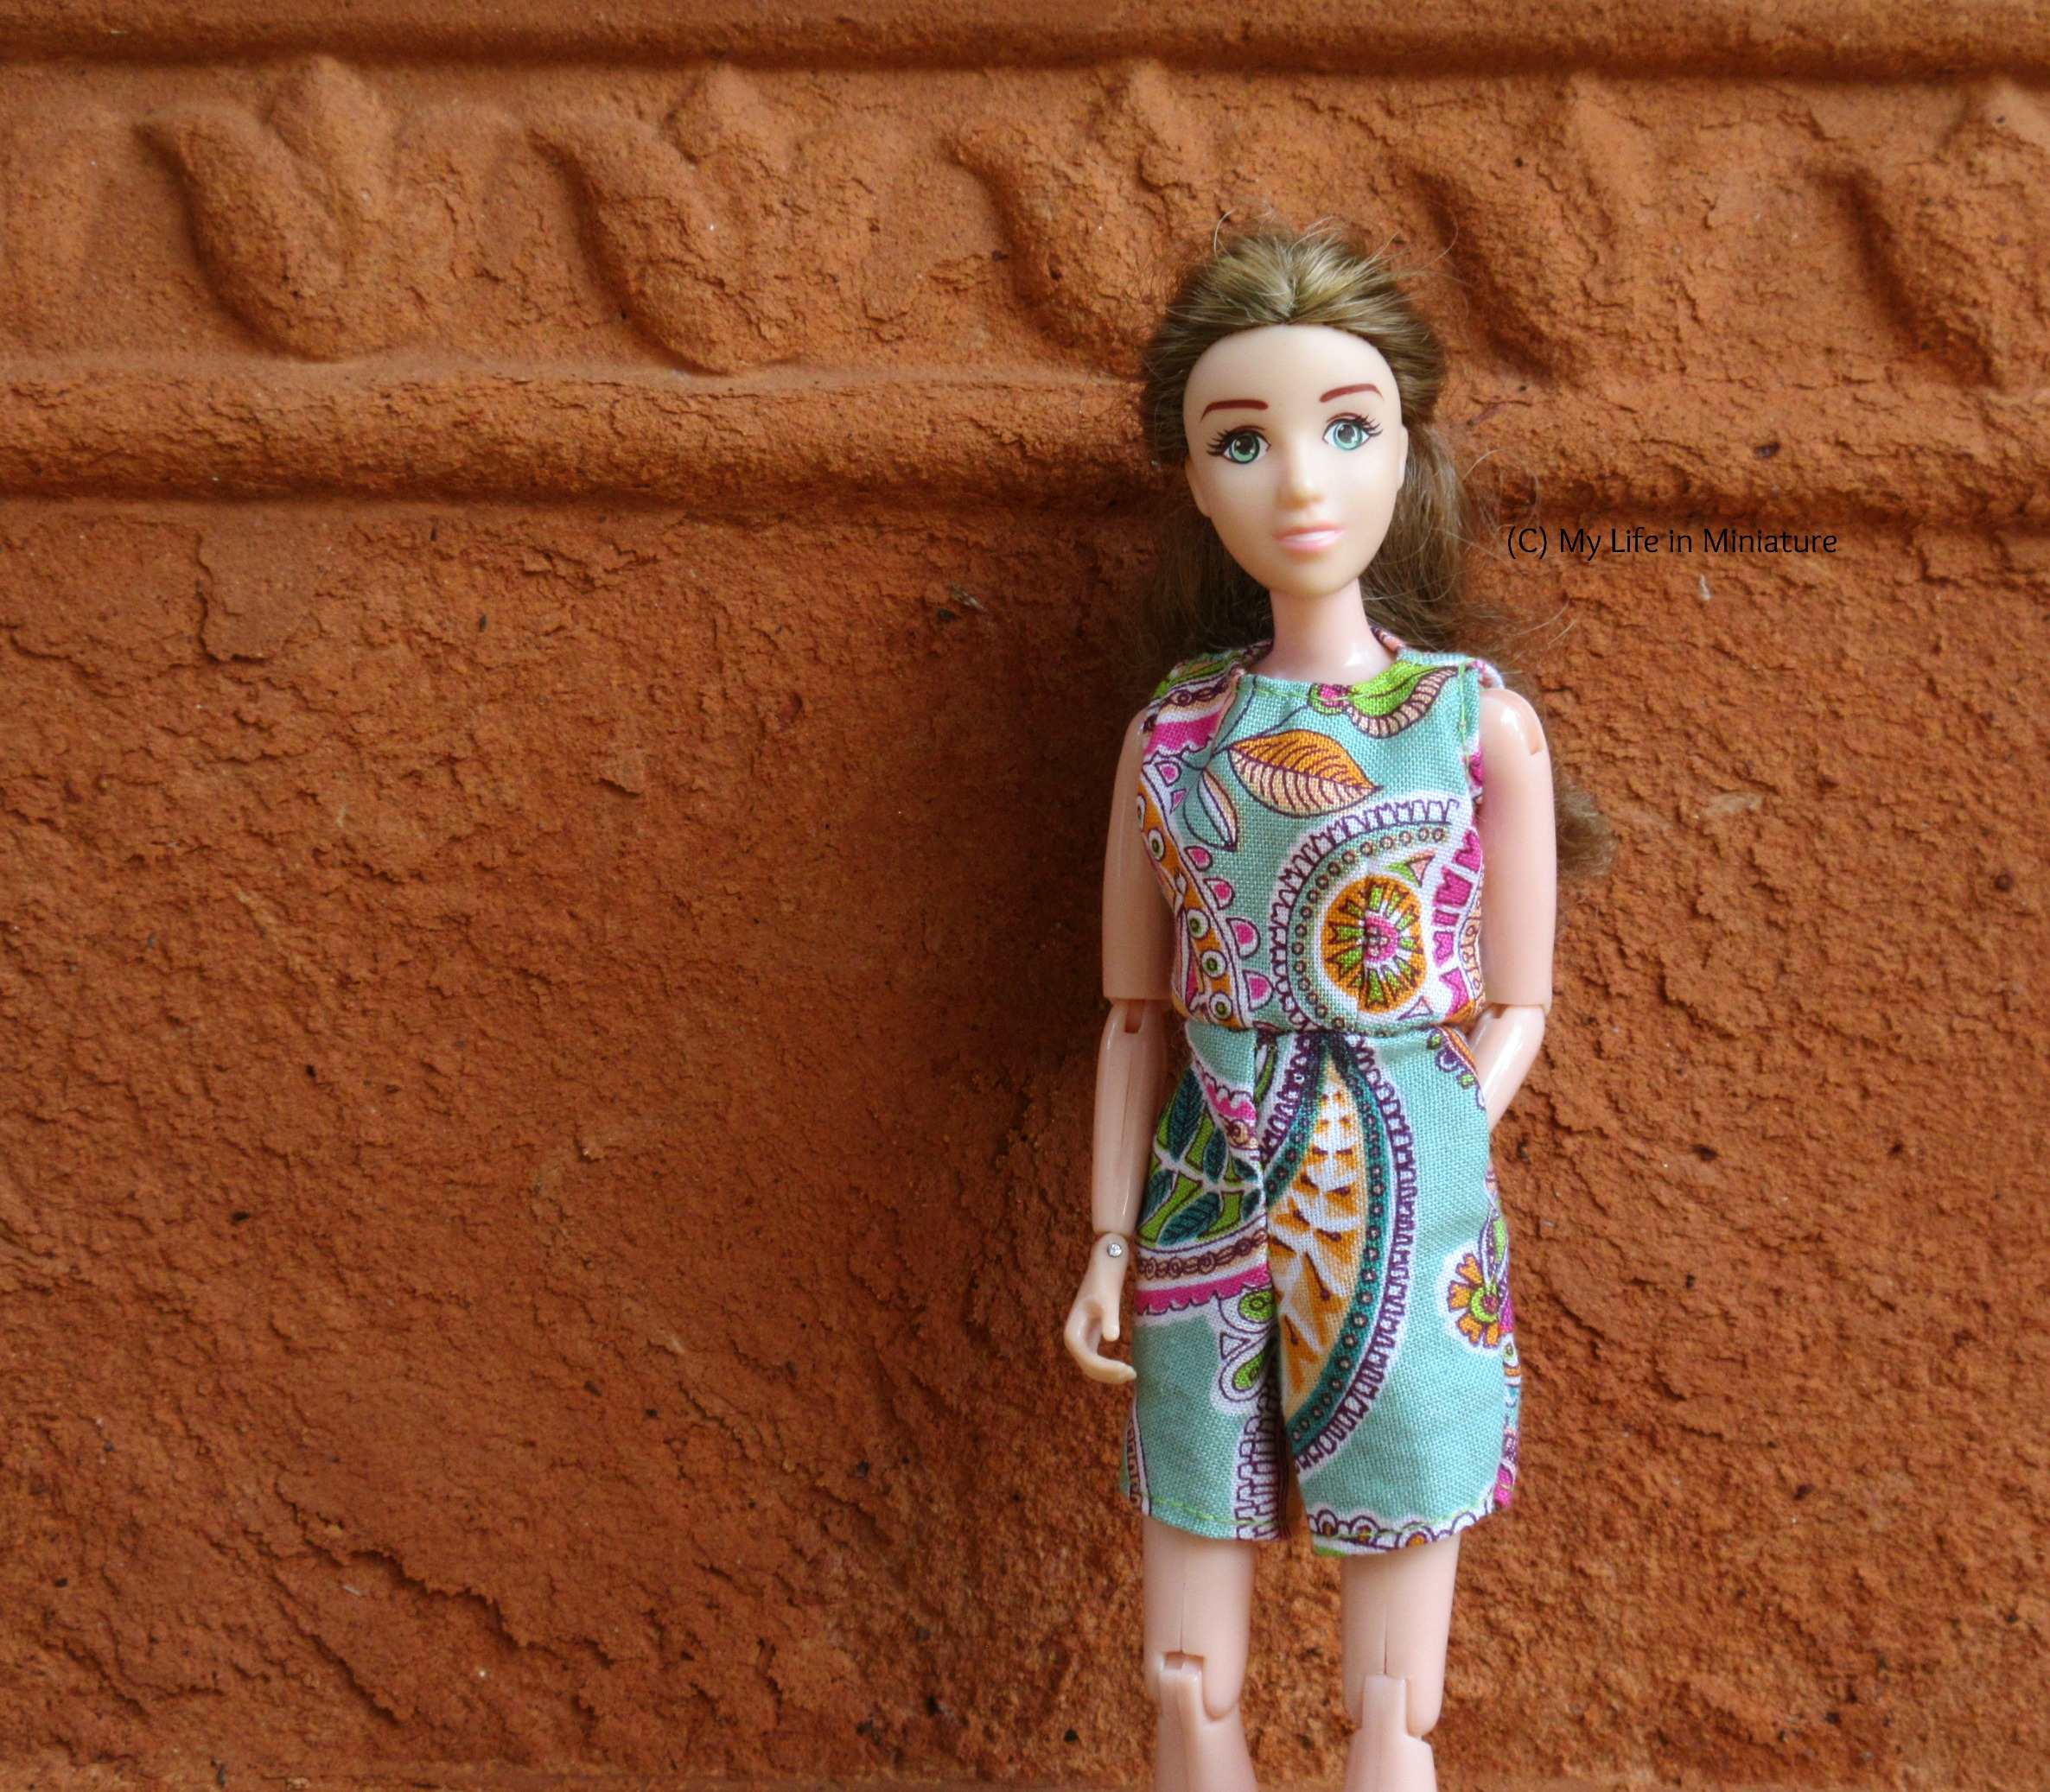 Sarah wears the playsuit with one hand in her pocket and the other hanging beside her. She looks at the camera, and is standing against a rough terracotta background.